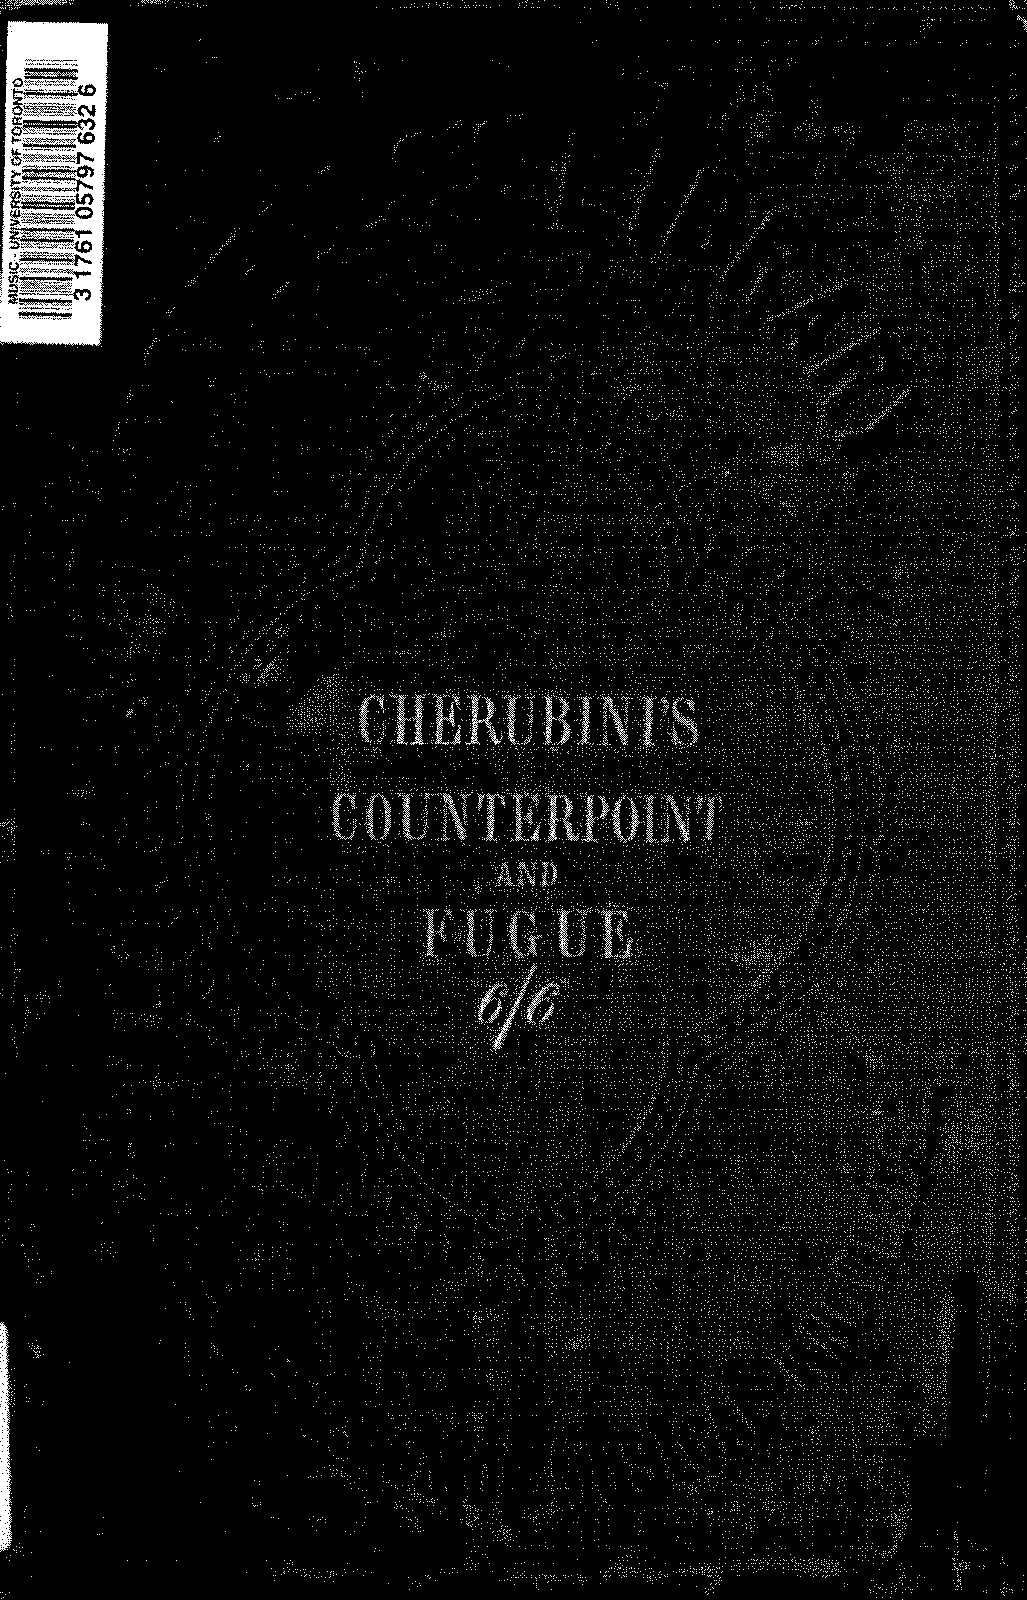 Counterpoint & Fugue - Cherubini.pdf